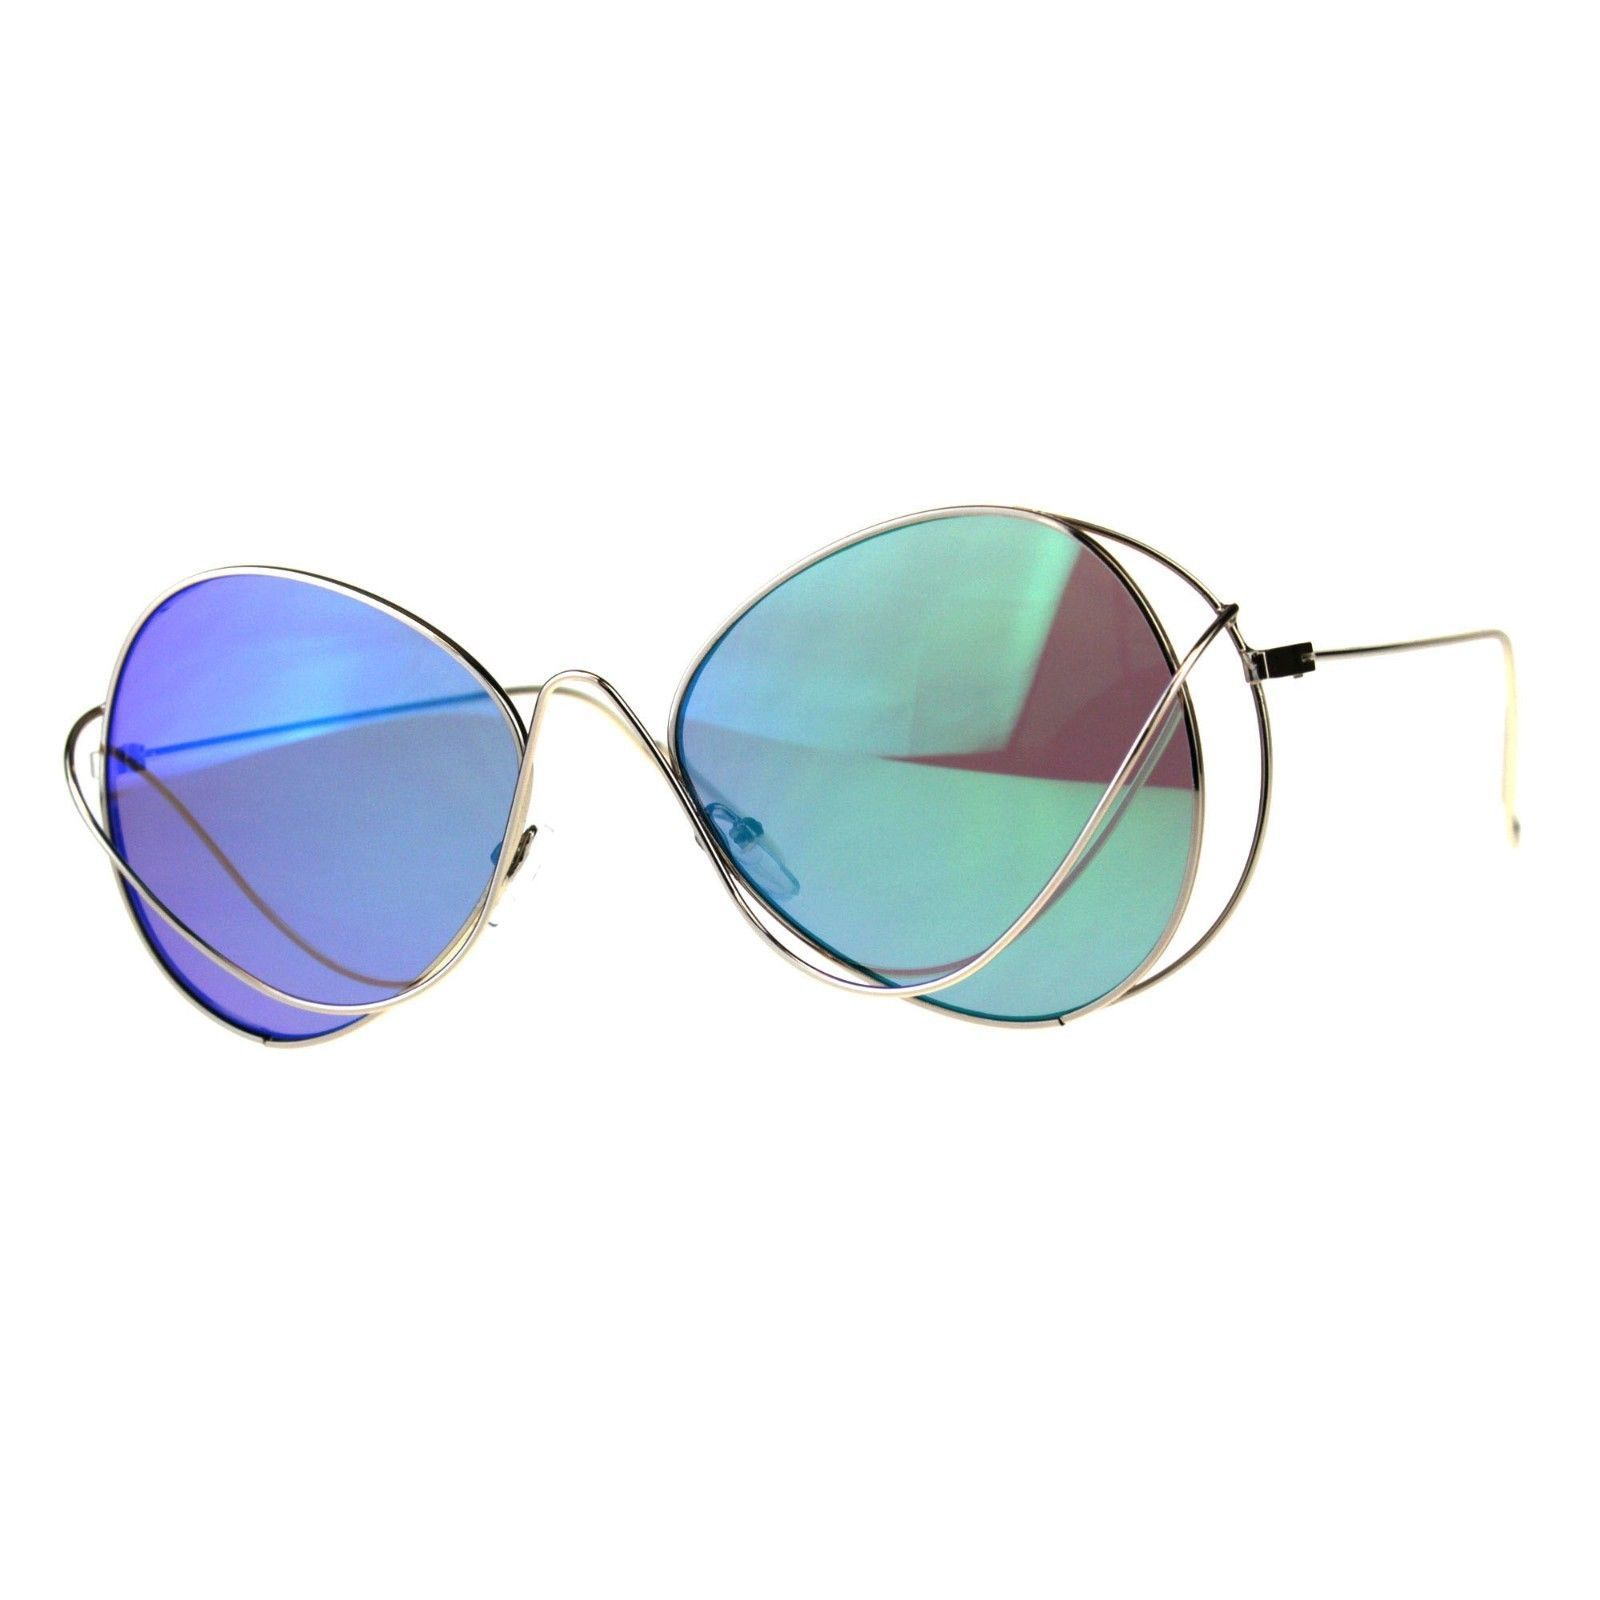 Womens Fashion Sunglasses Thin Metal Wired Frame Unique Style UV 400